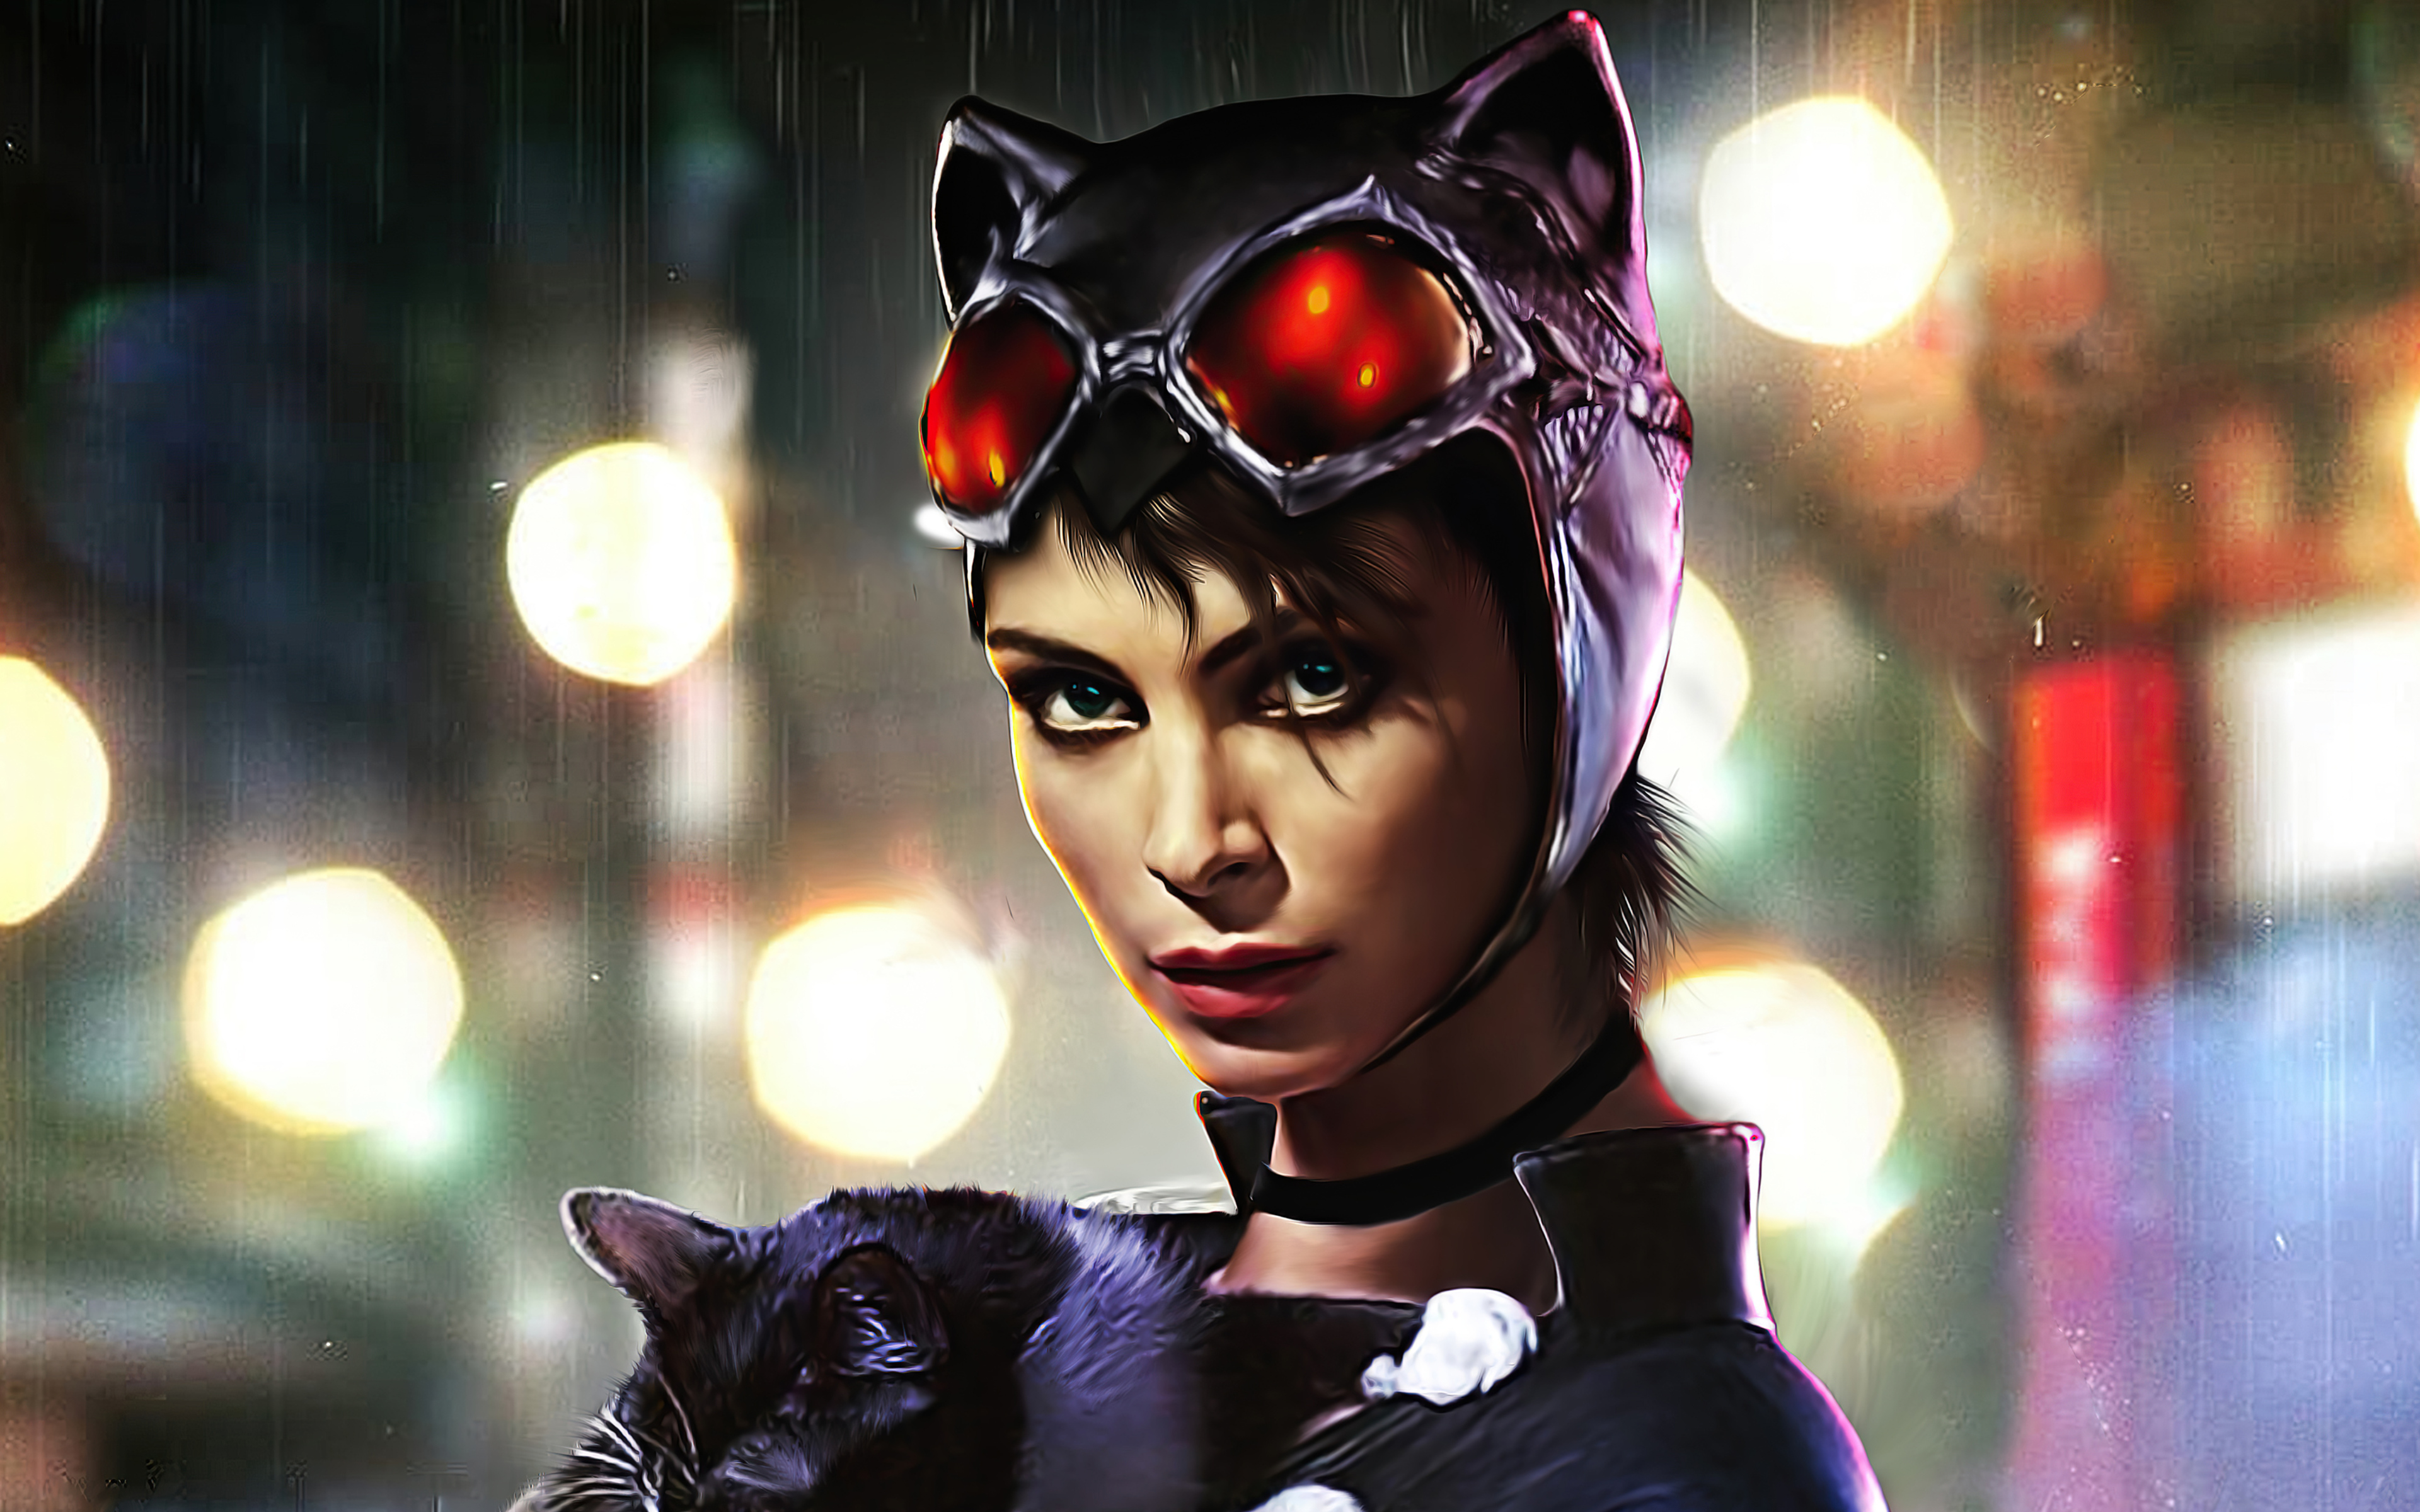 morena-baccarin-as-catwoman-4k-e6.jpg